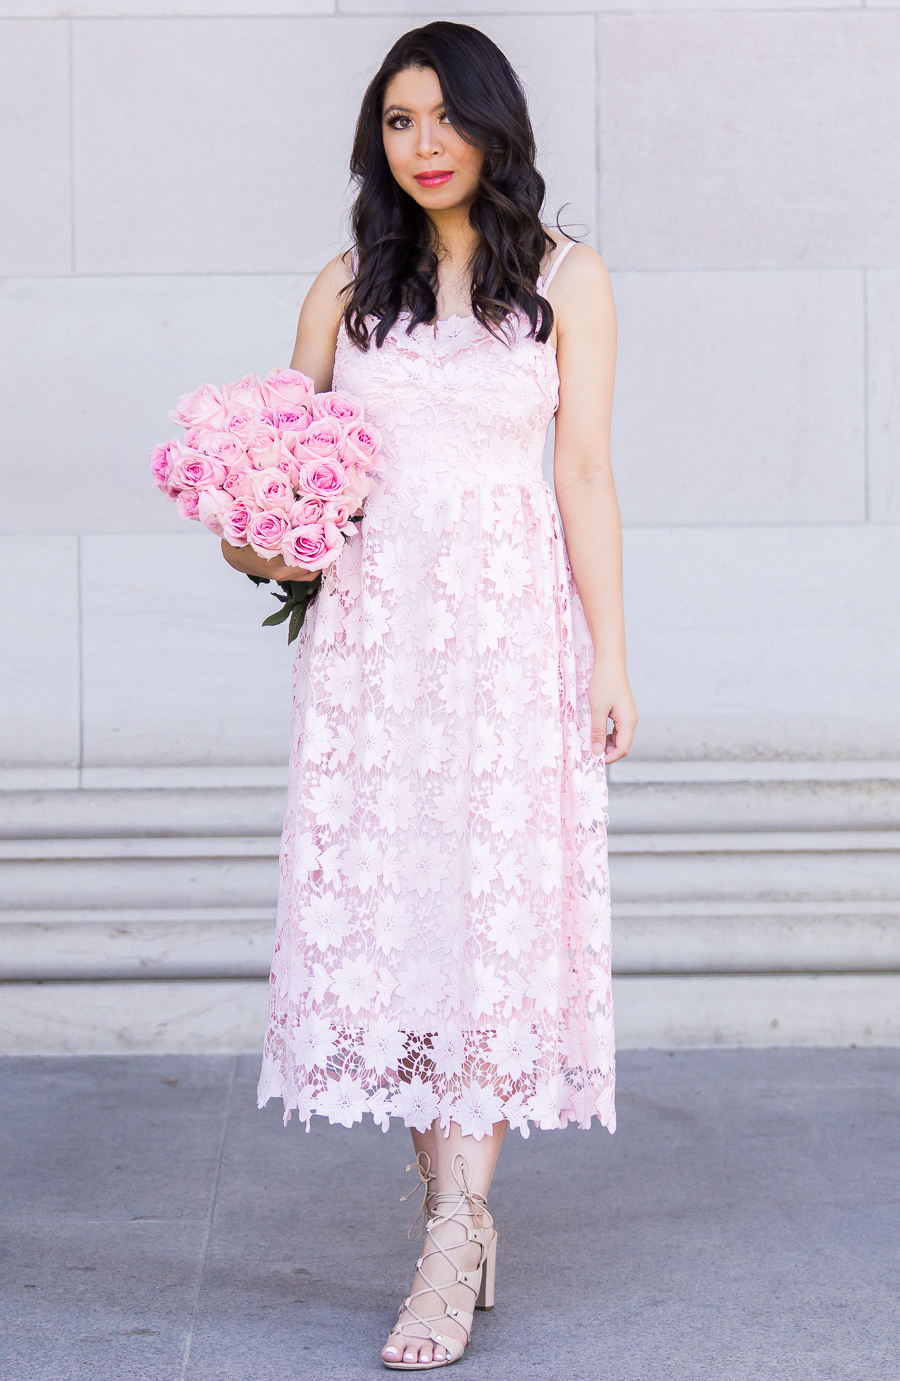 Pink Lace Dress | Just A Tina Bit